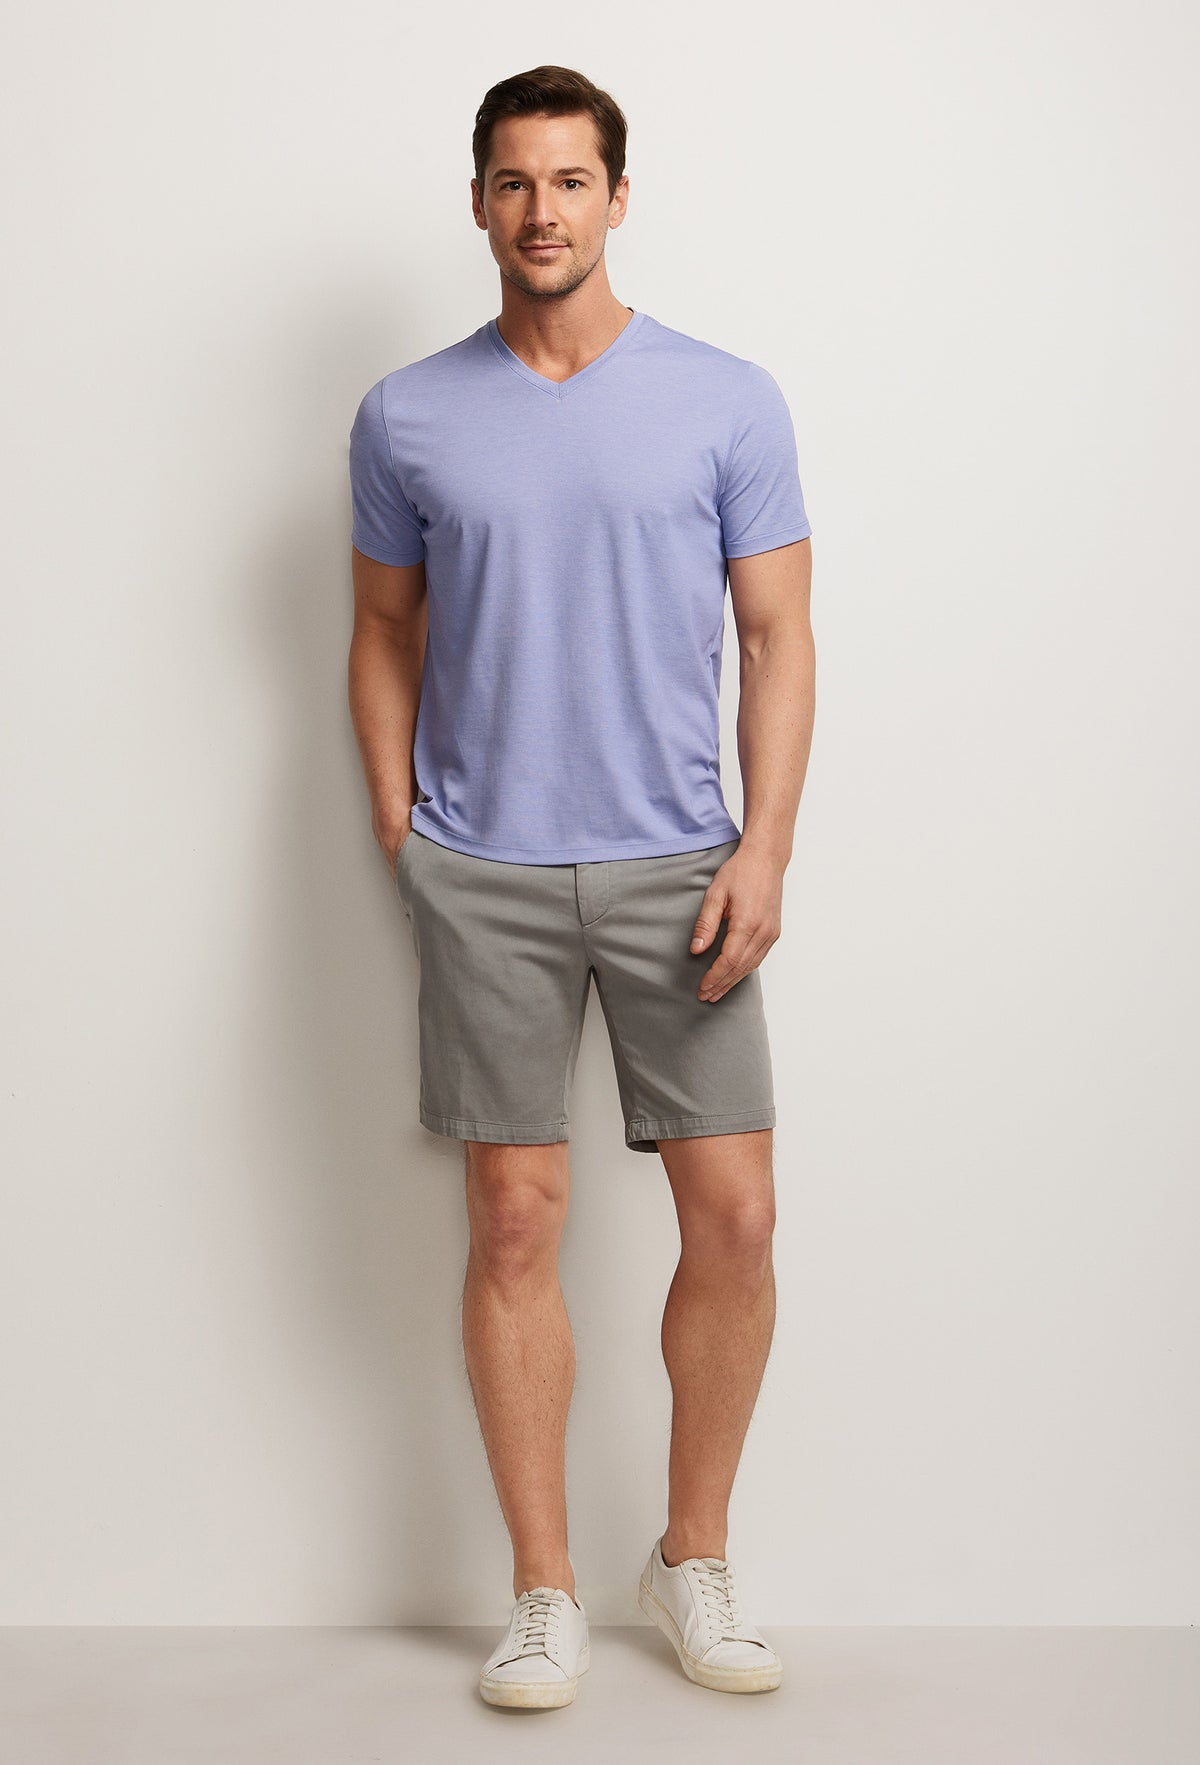 ZACHARY-PRELL-Catalpa-BottomsModern-Menswear-New-Dress-Code